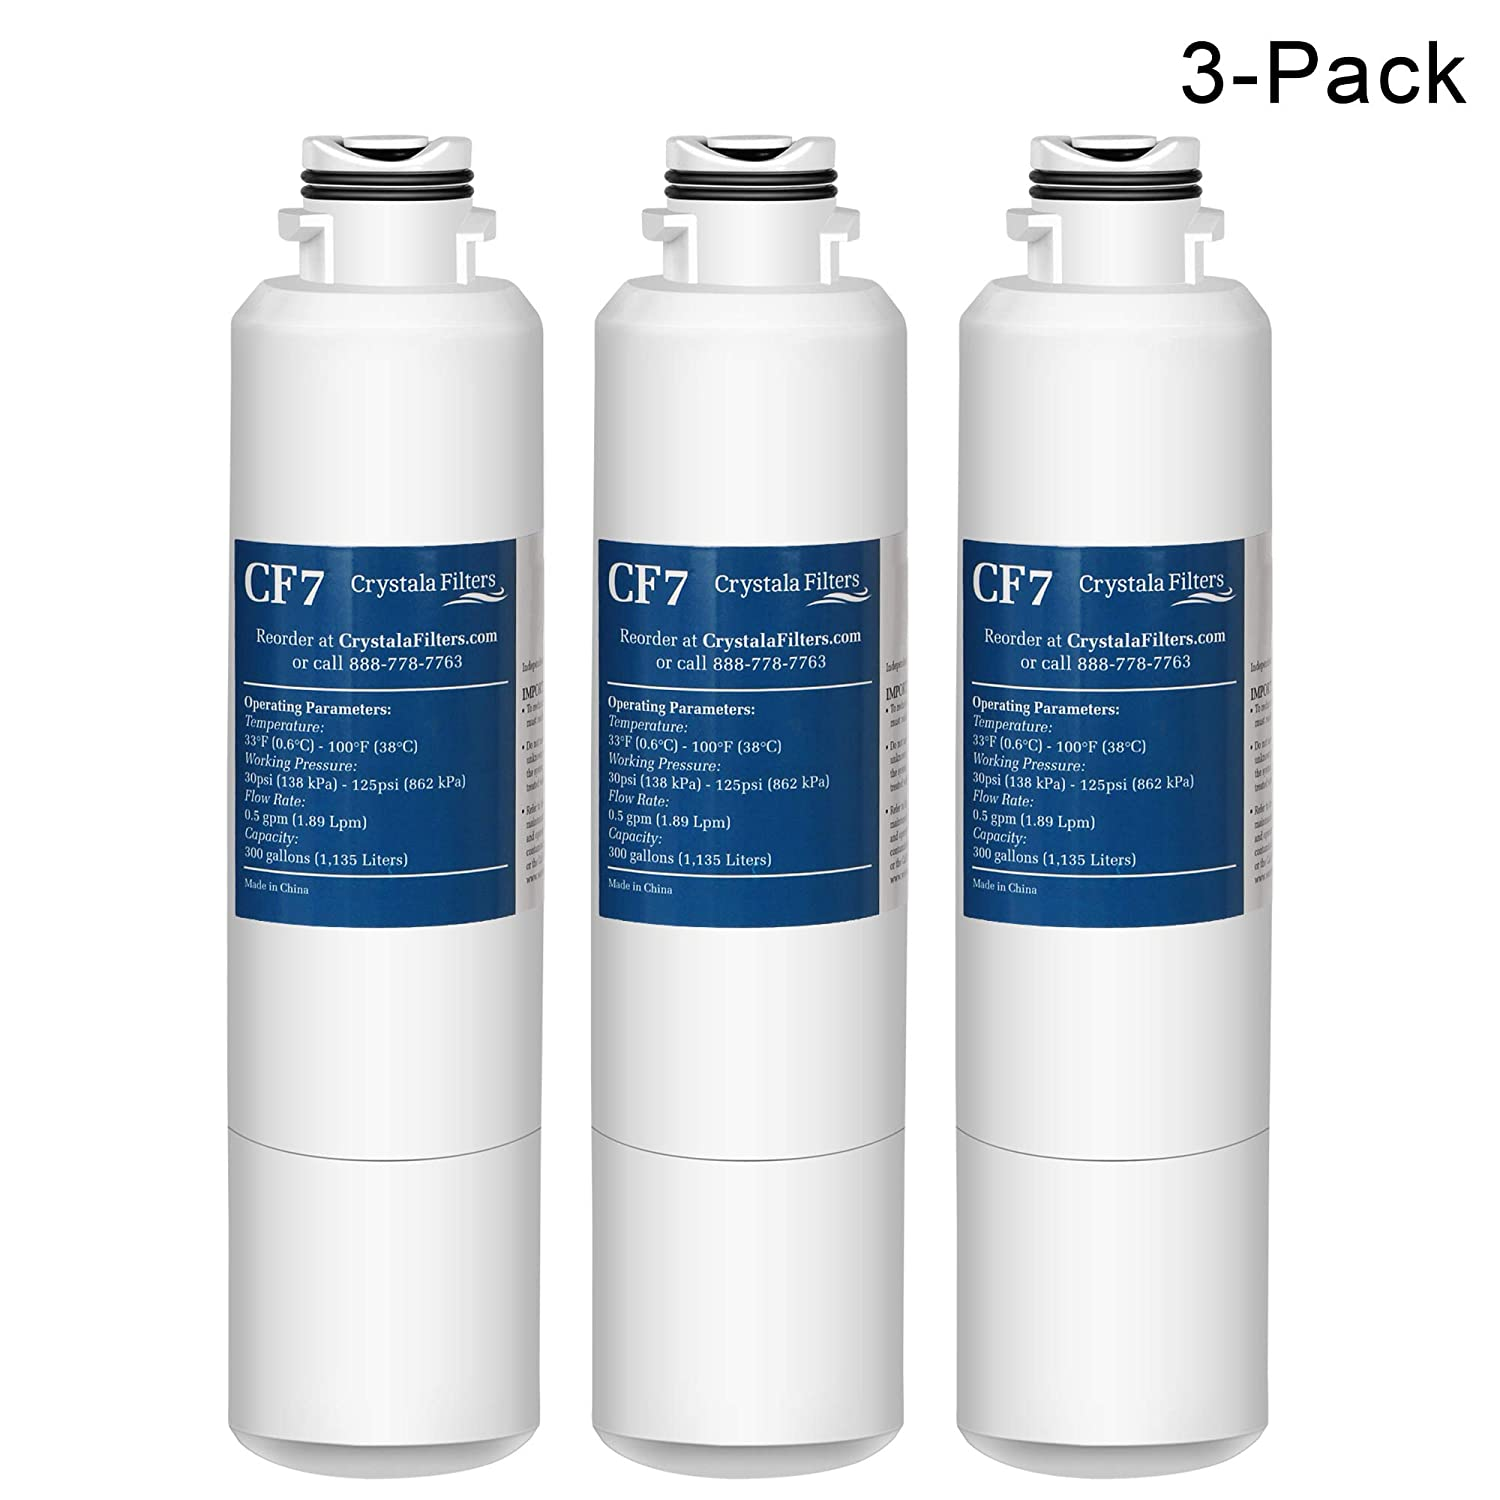 Samsung DA29-00020B Refrigerator Water Filter Compatible for Samsung DA29-00020B, HAF-CIN/EXP, Kenmore 46-9101 by Crystala Filters, 3 Pack